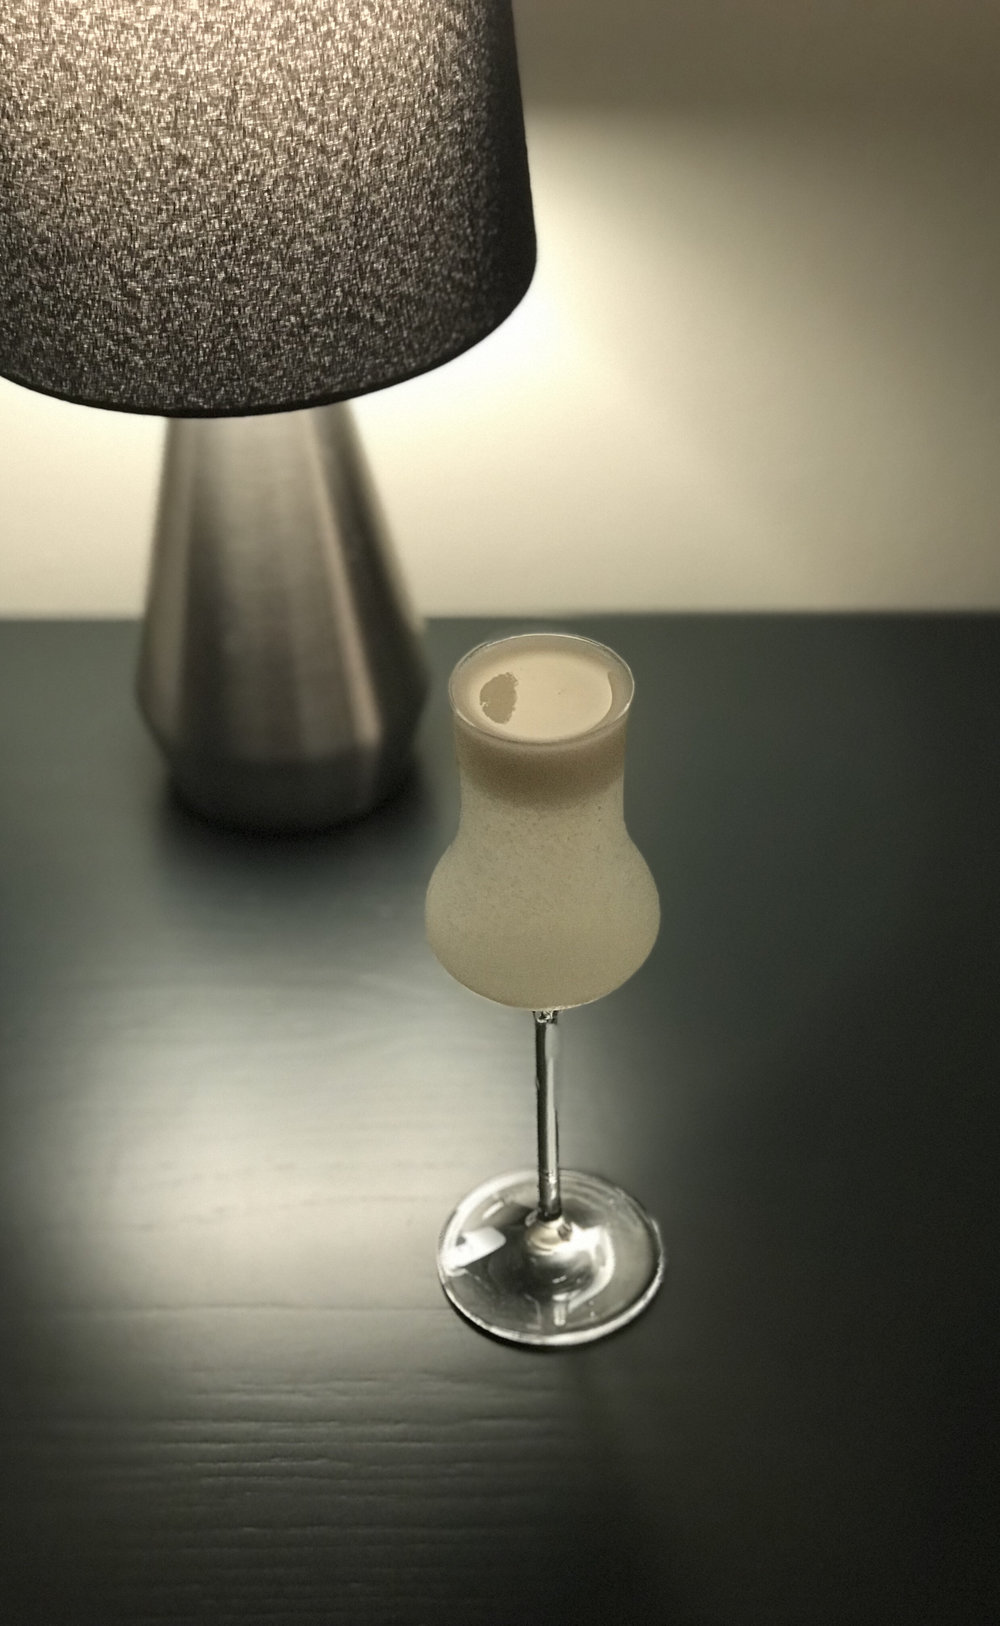 One of the recipes from One Bottle Cocktail, the Silken Sour, which uses tofu to help give the cocktail its texture and also that foam